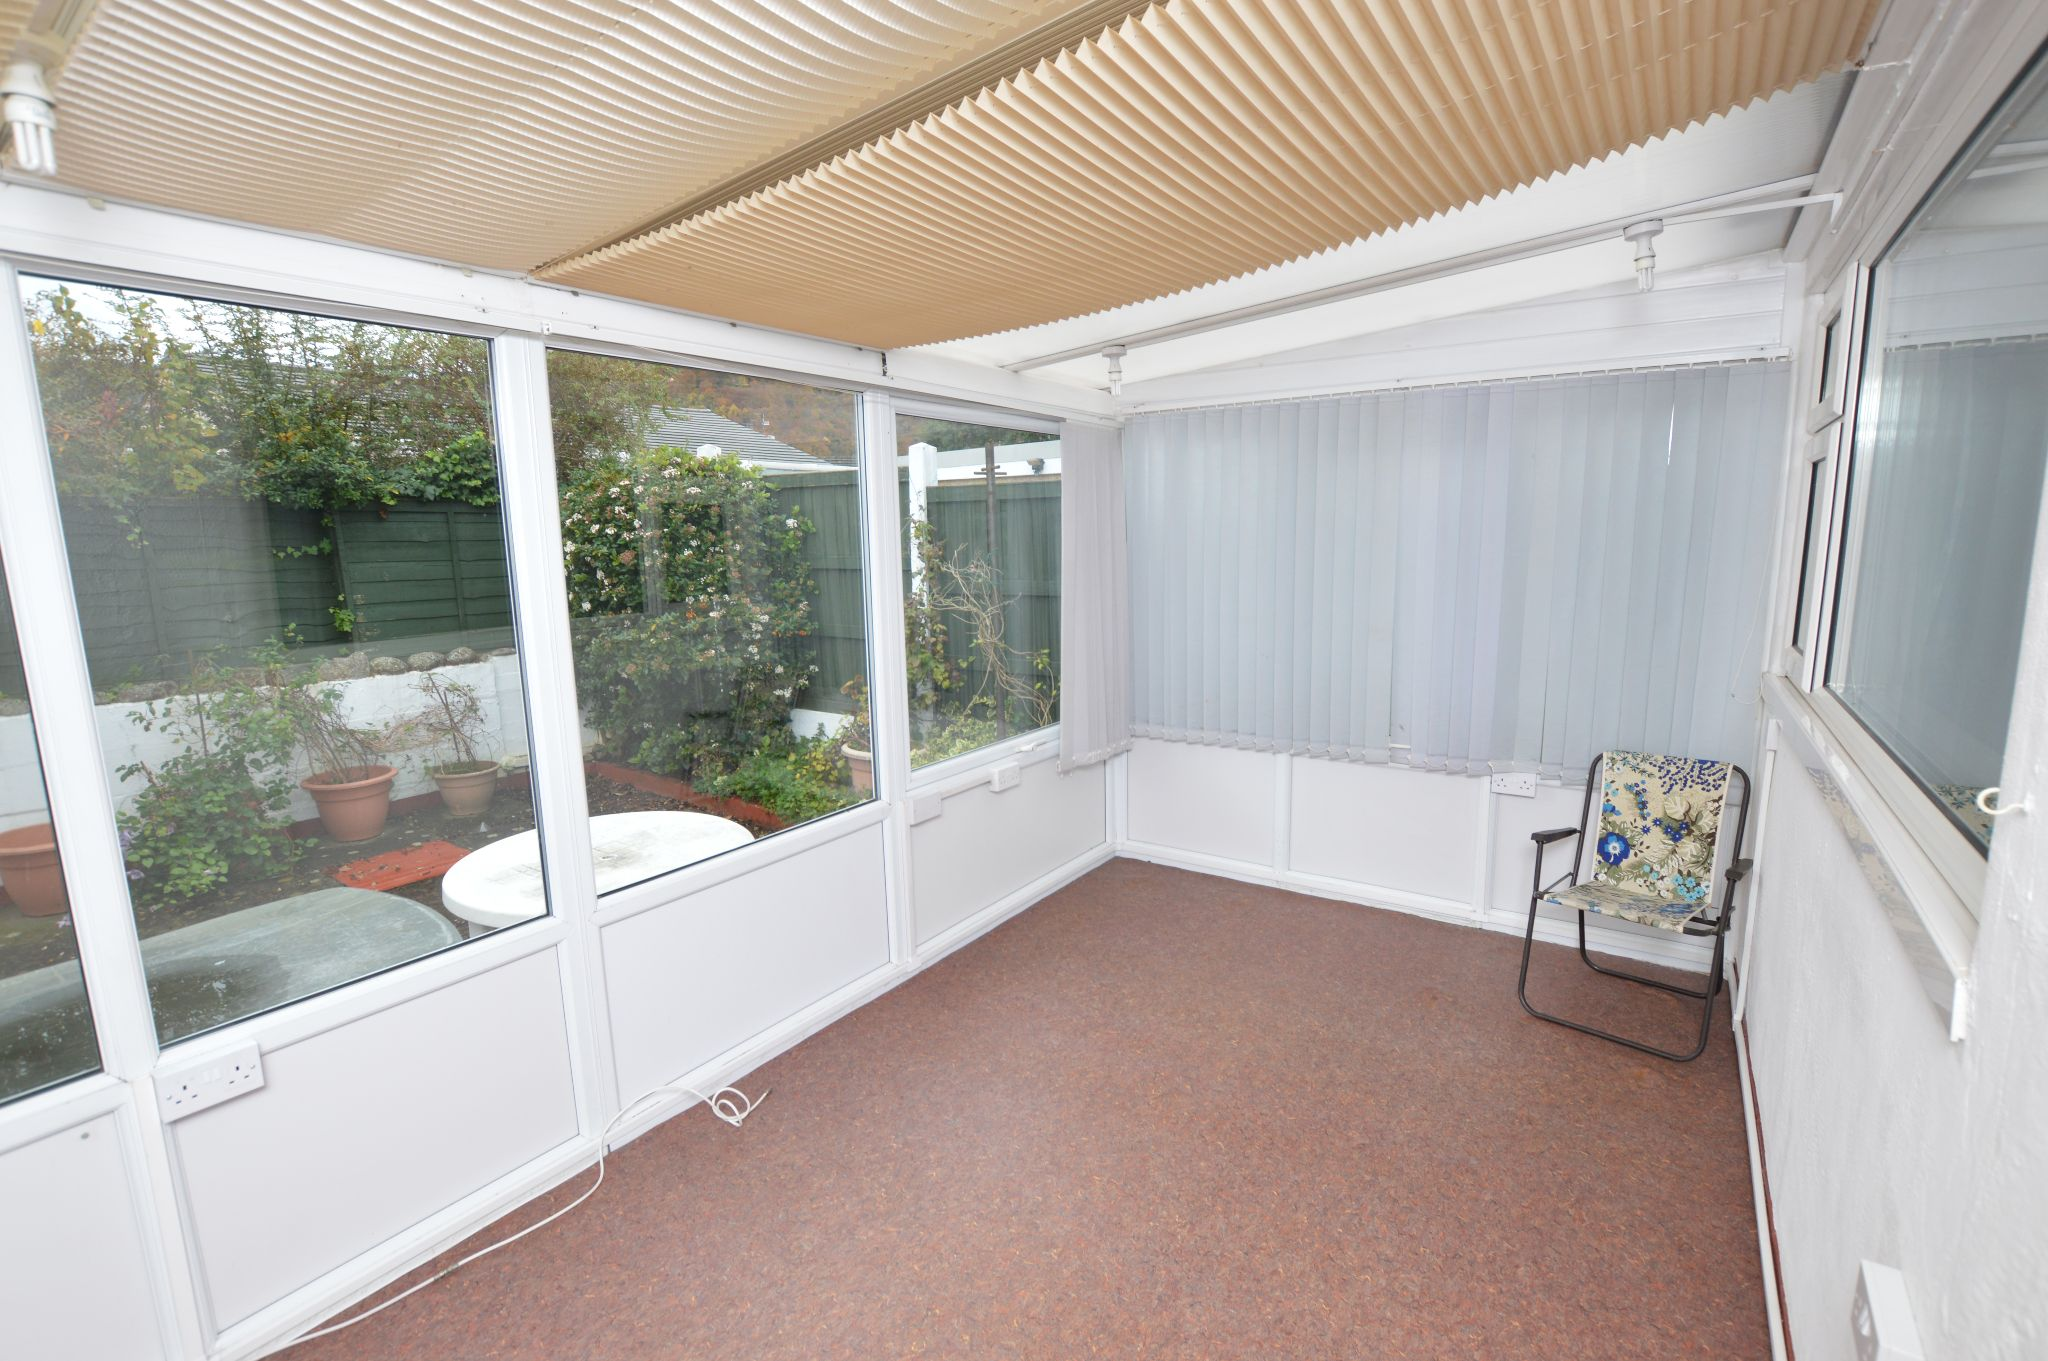 2 bedroom semi-detached bungalow For Sale in Abergele - Conservatory